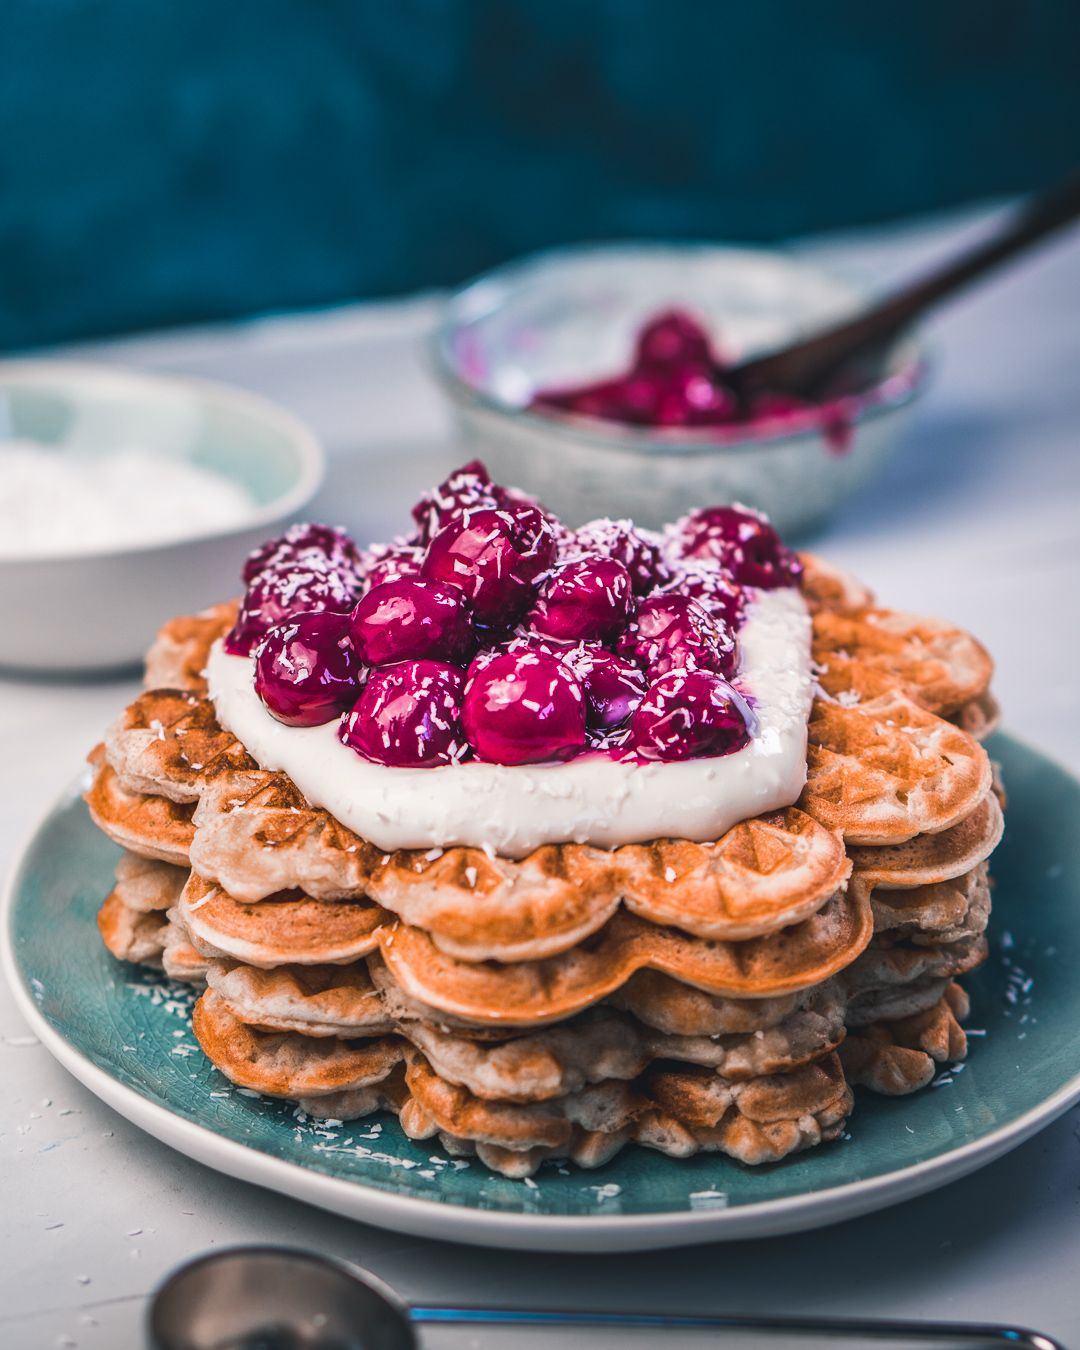 Spelt Waffles with Cherry Topping